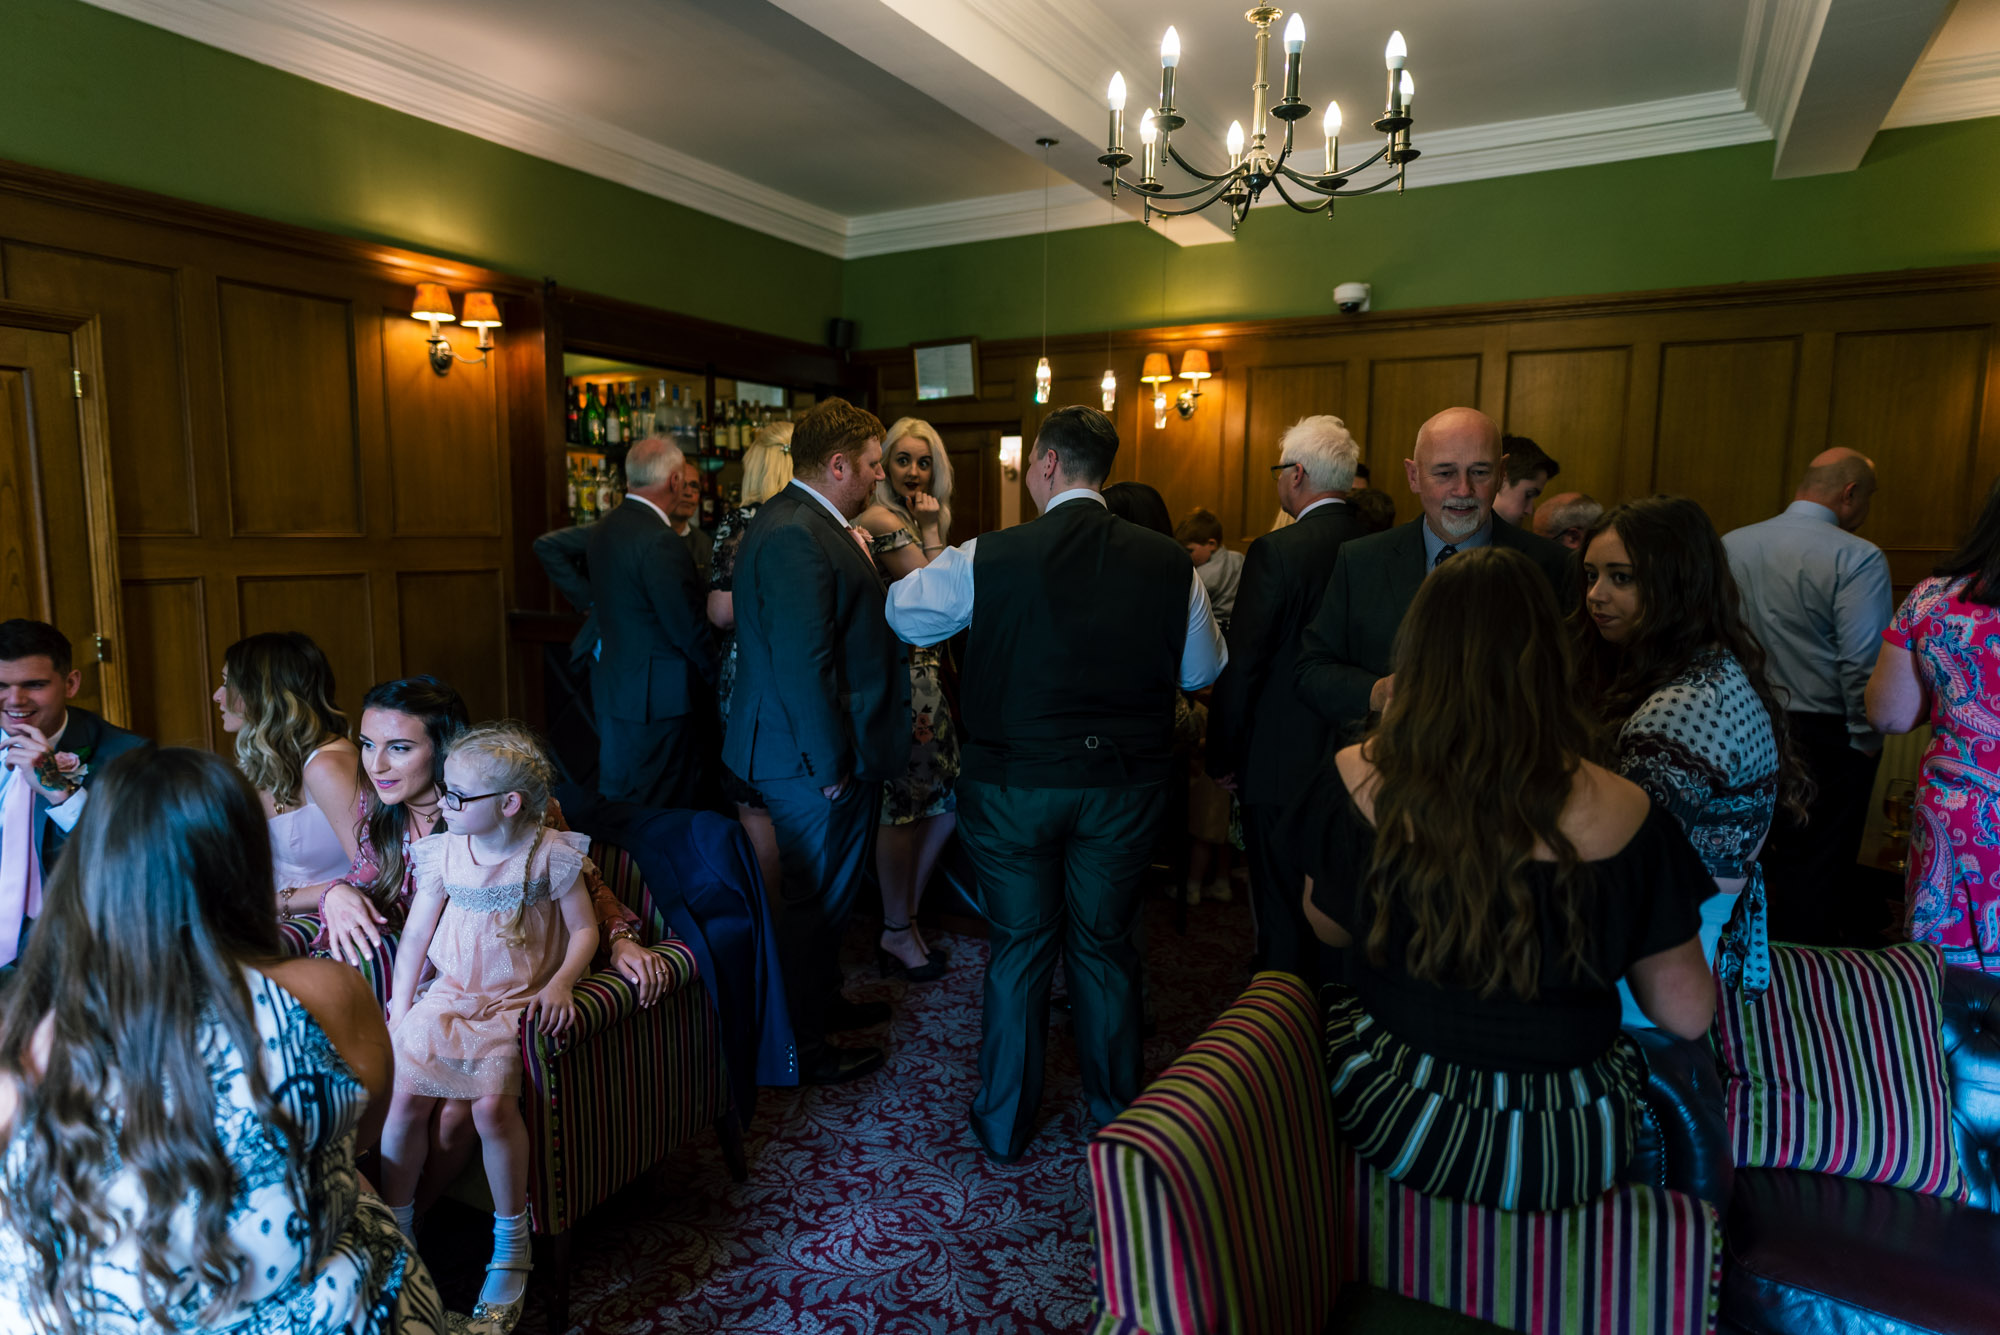 Wedding guests gather in the bar